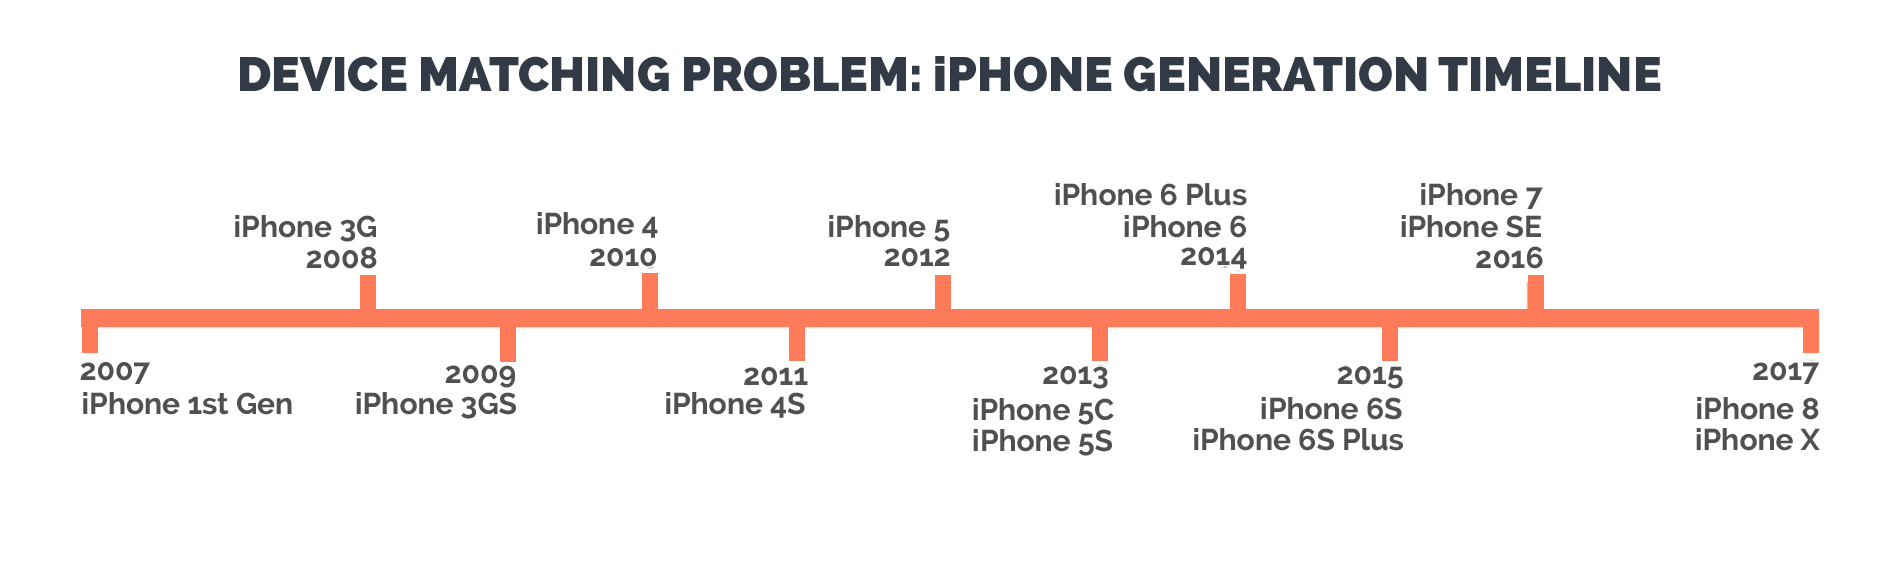 device-matching-problem-iPhone-generation-timeline-graphic-1